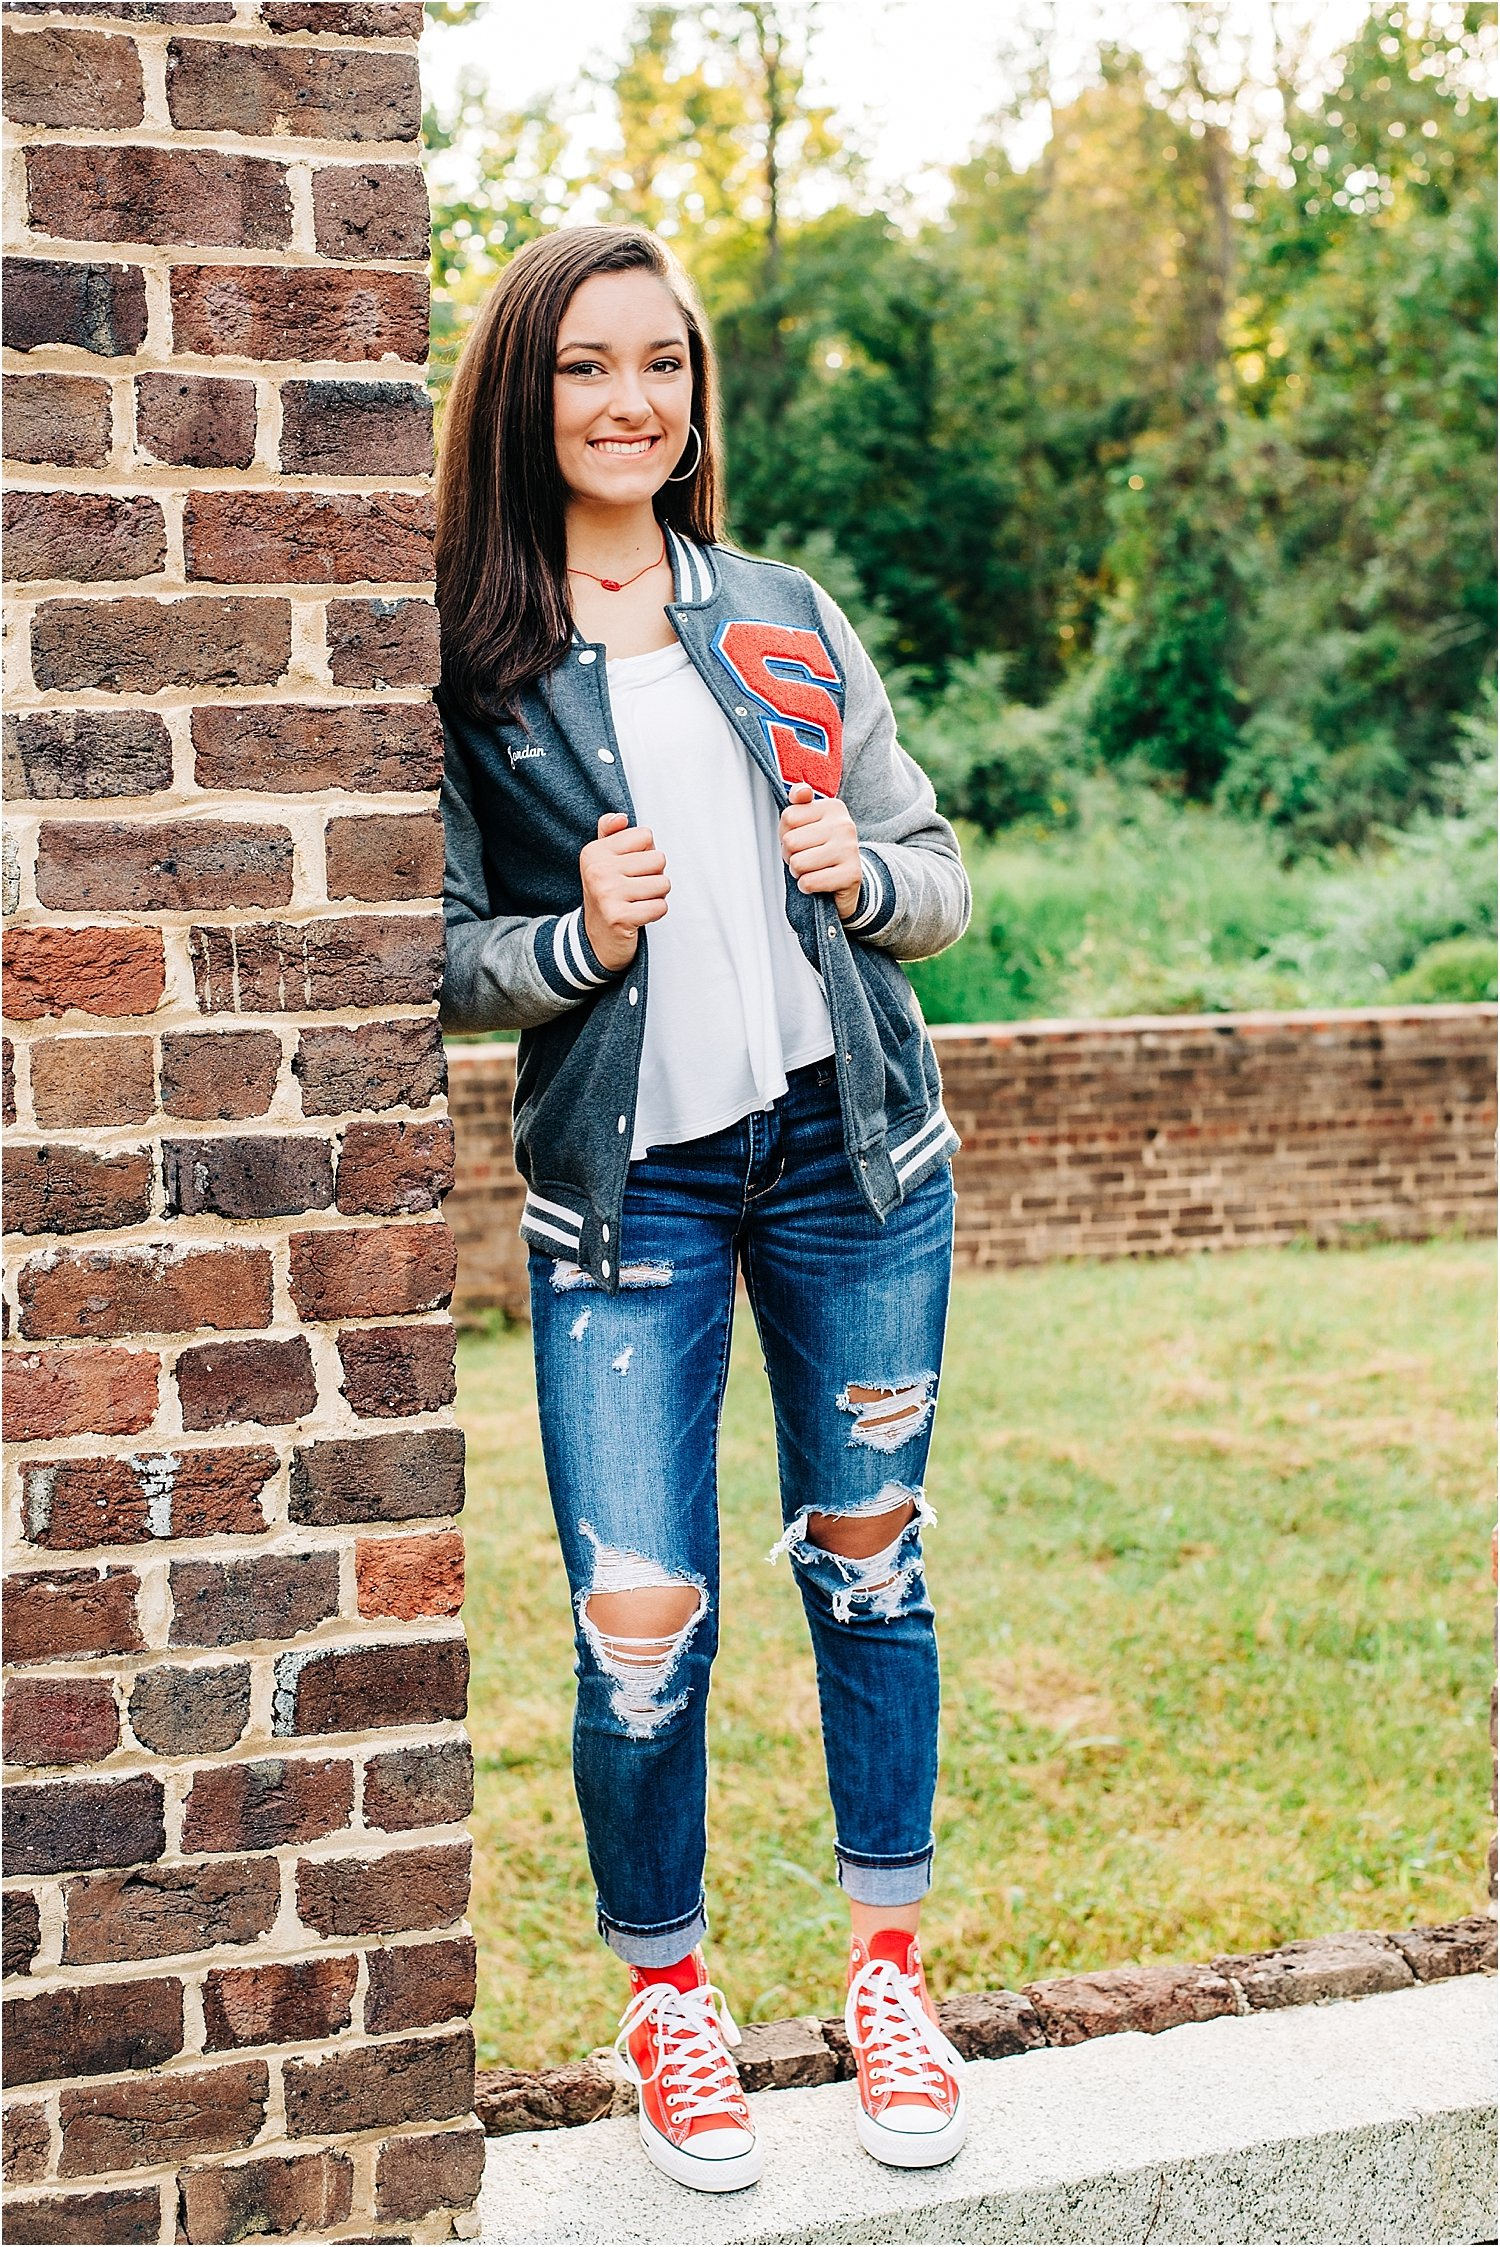 Senior volleyball star poses in letter jacket and red high tops!